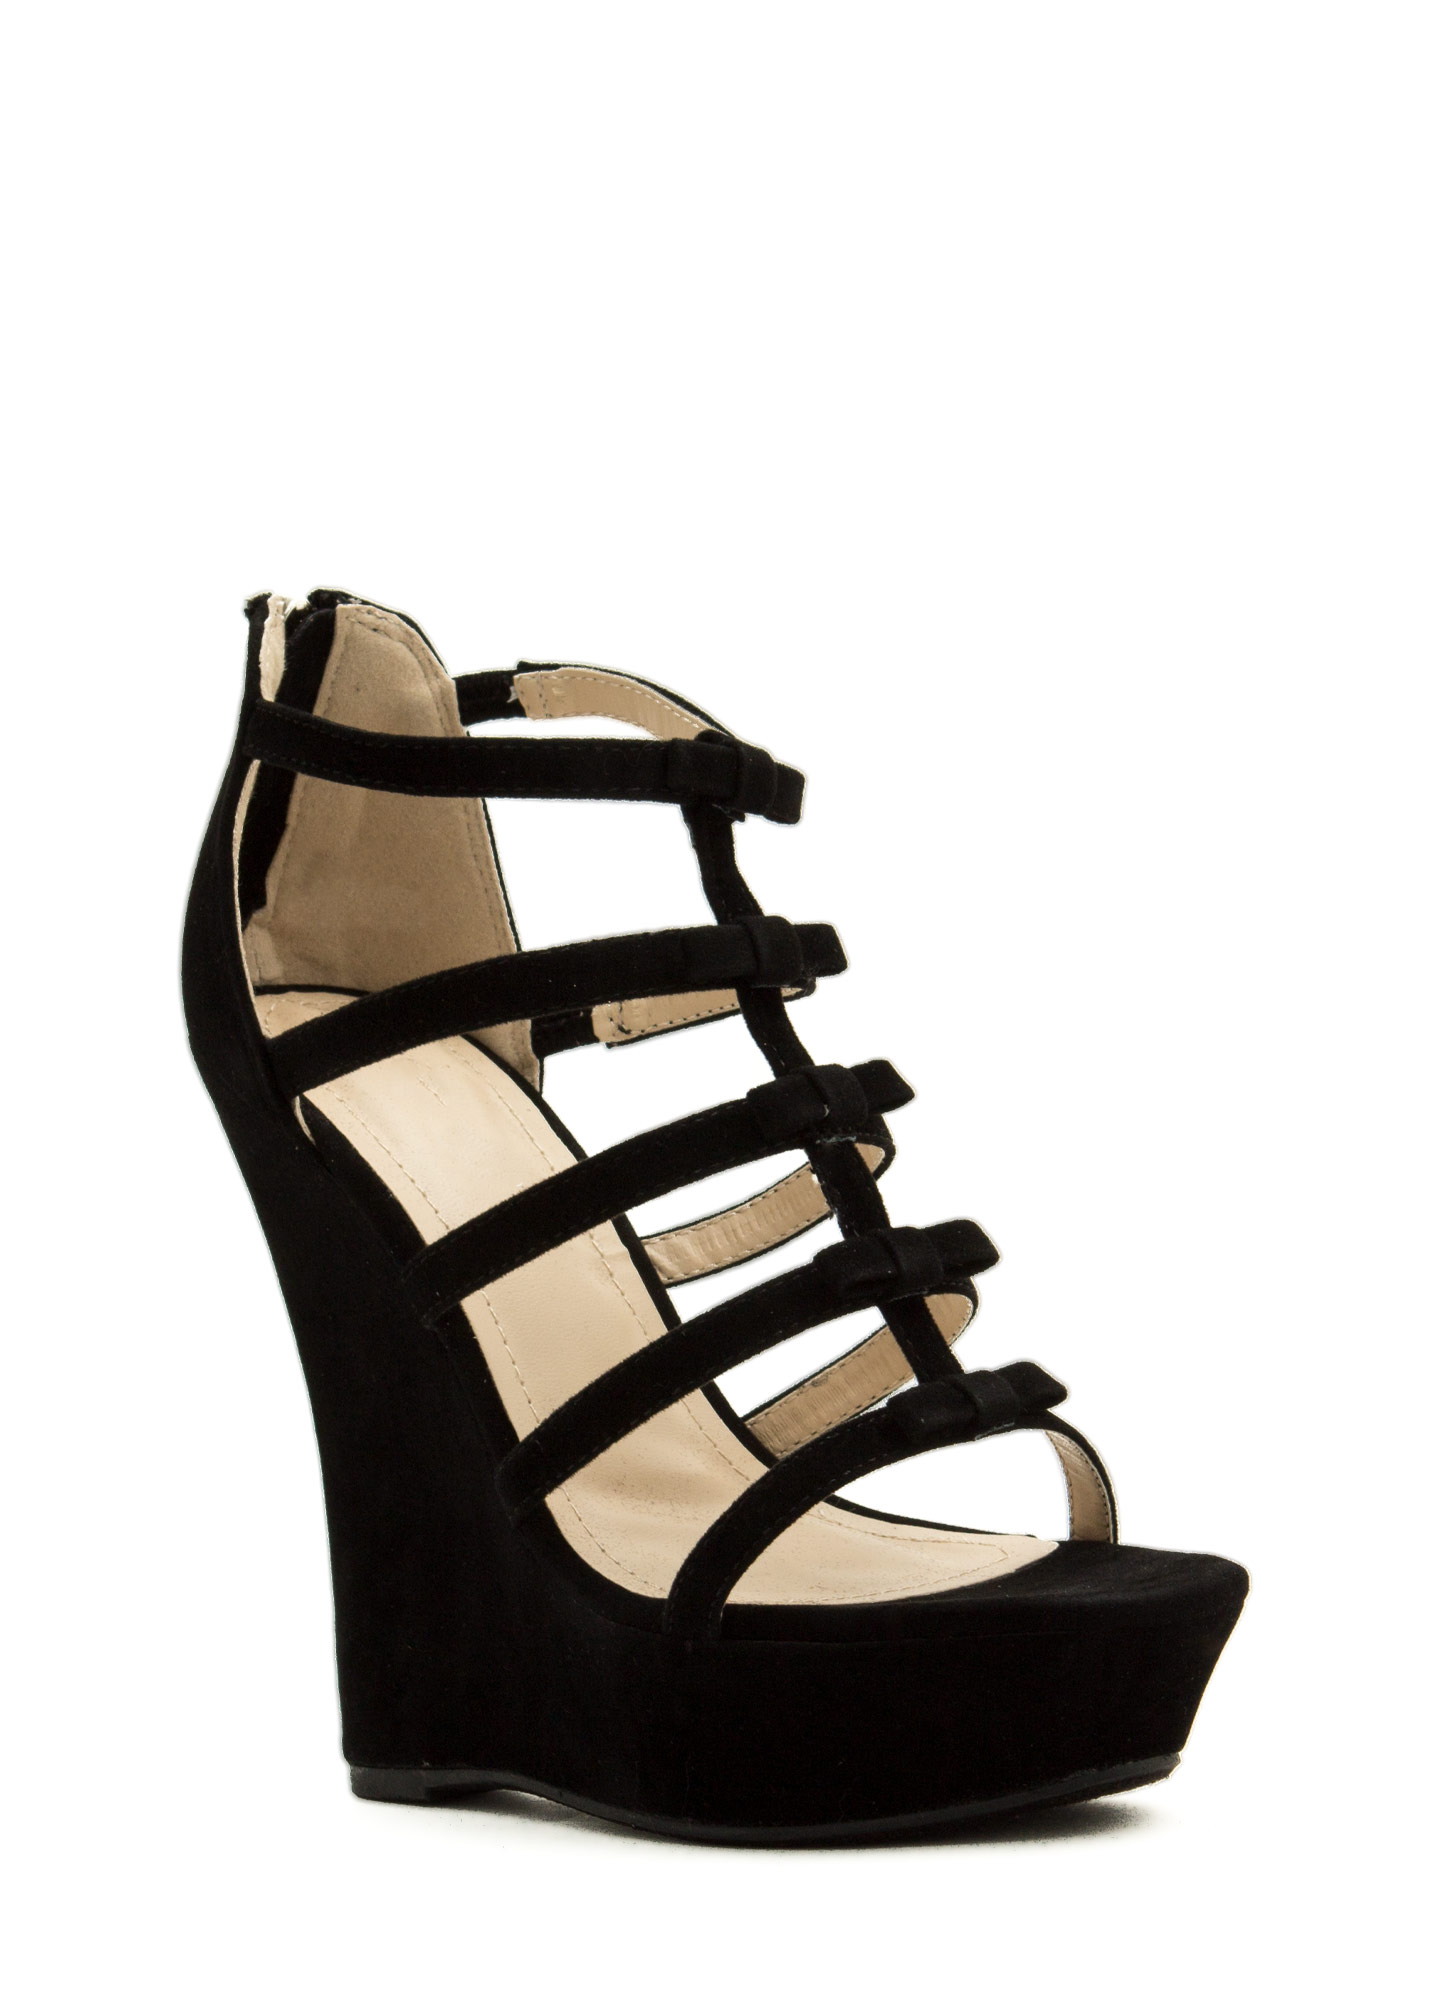 Laddered Bows Platform Wedges BLACK